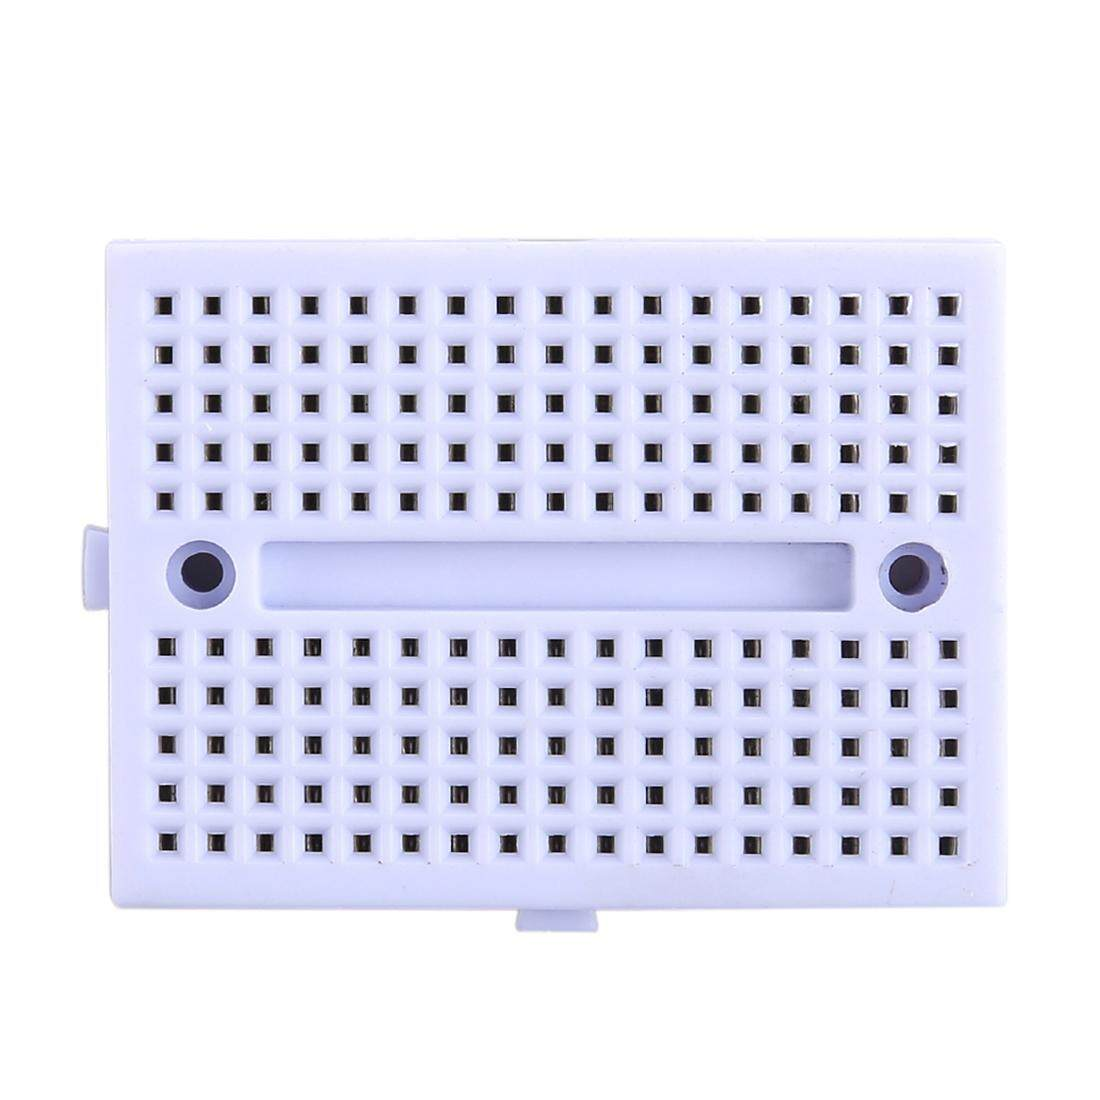 Features 5pcs Syb 170 Colorful Mini Breadboard Prototype Board Dan New Printed Circuit For Arduino 5 Pcs Lt365 Points Solderless Whitelt365